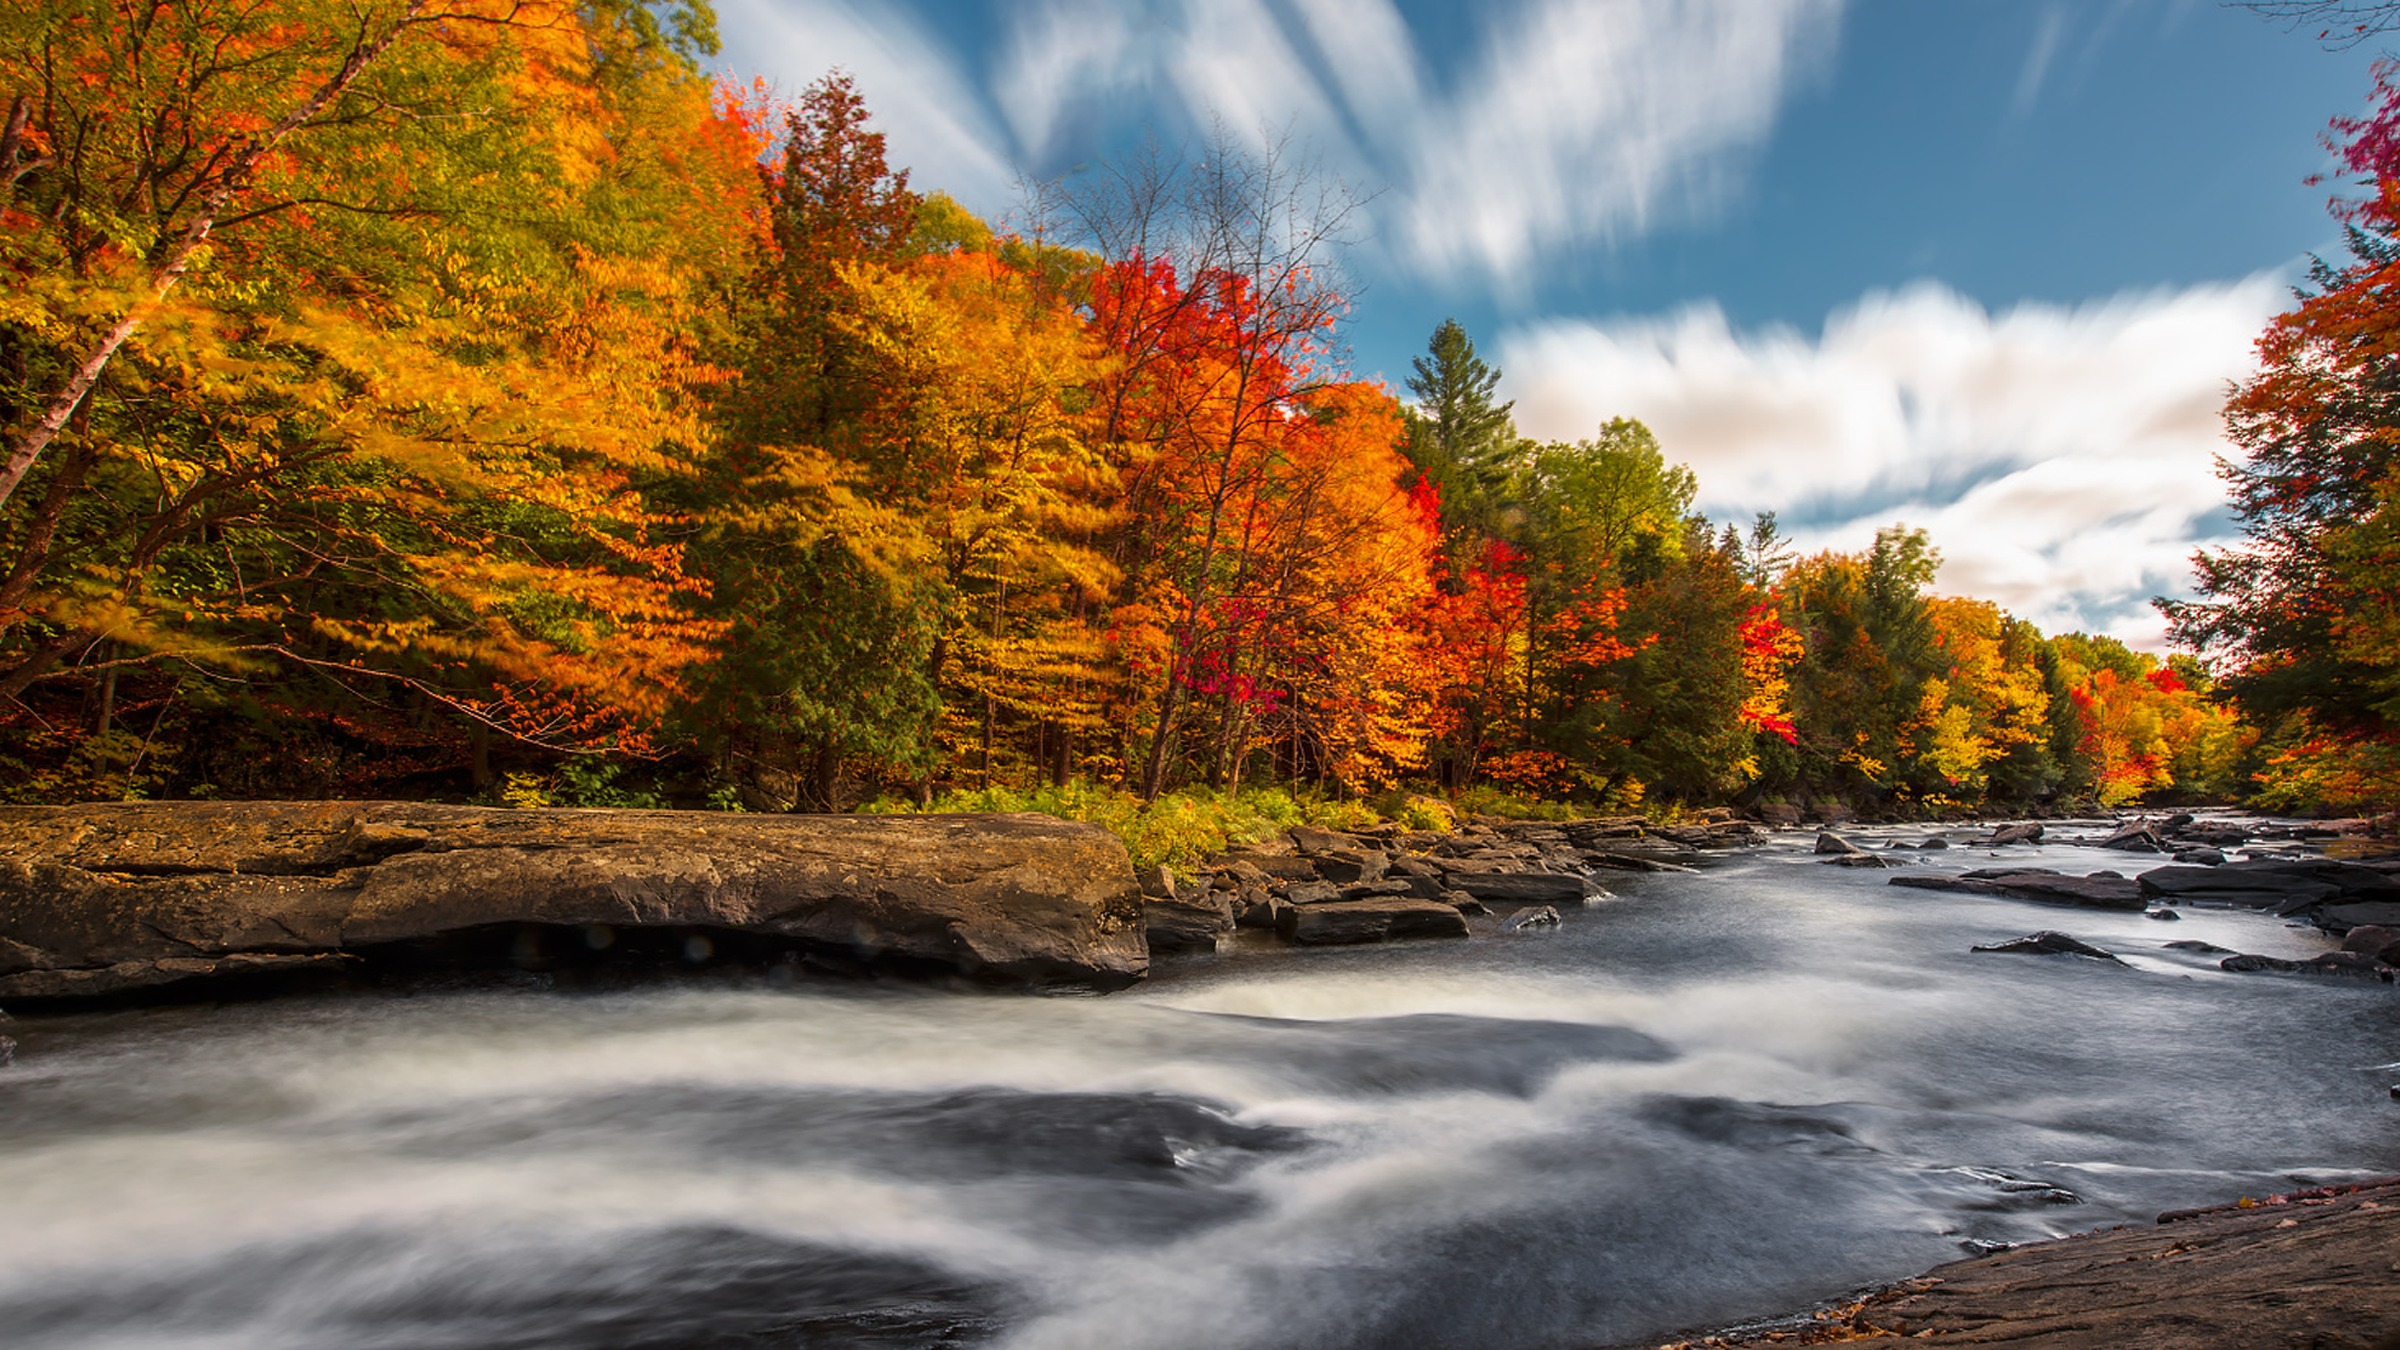 Top 10 Reasons To Visit Muskoka In Autumn